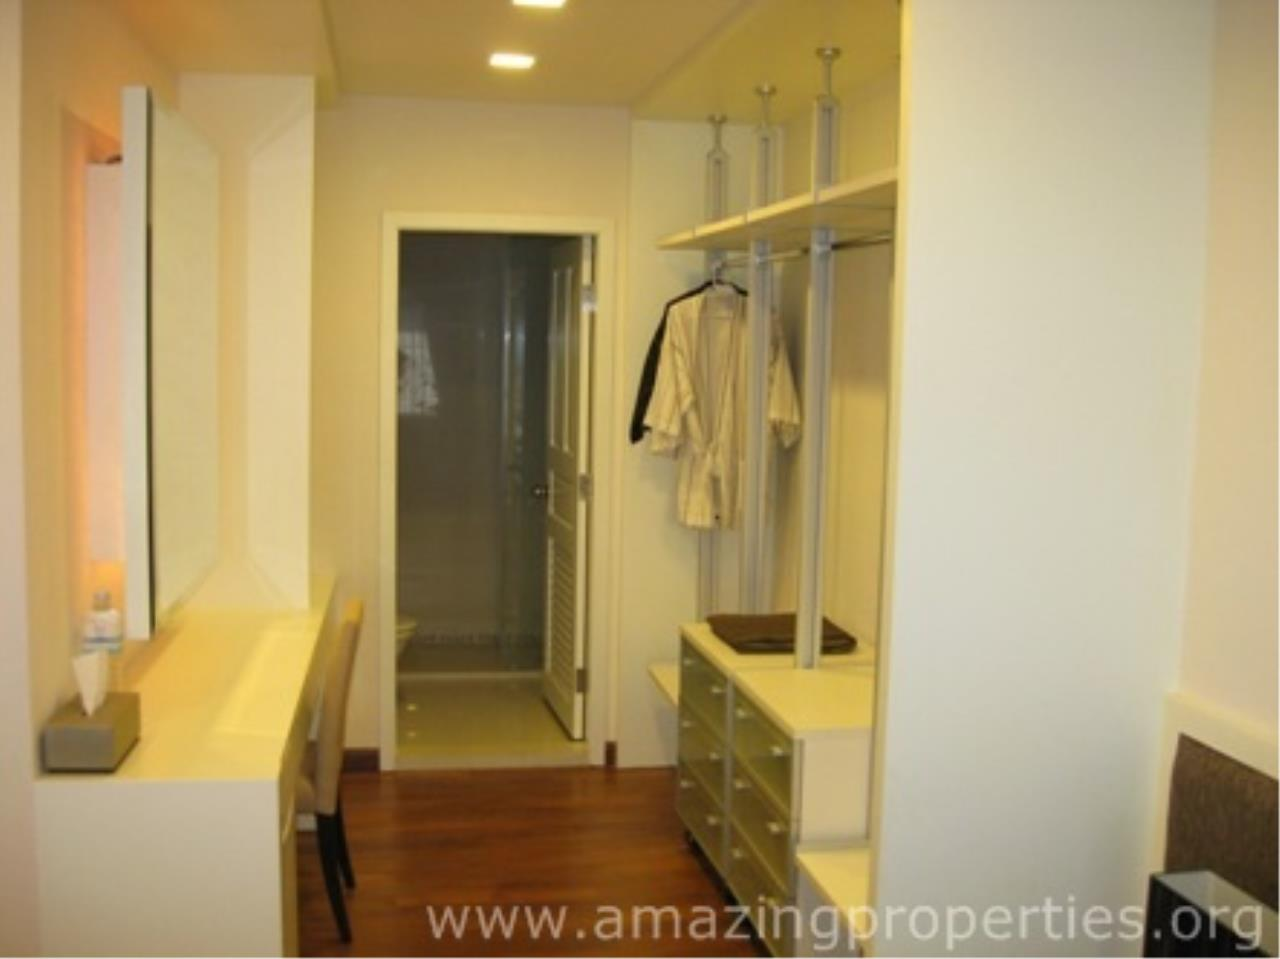 Amazing Properties Agency's 3 bedrooms Apartment for rent/sale 6